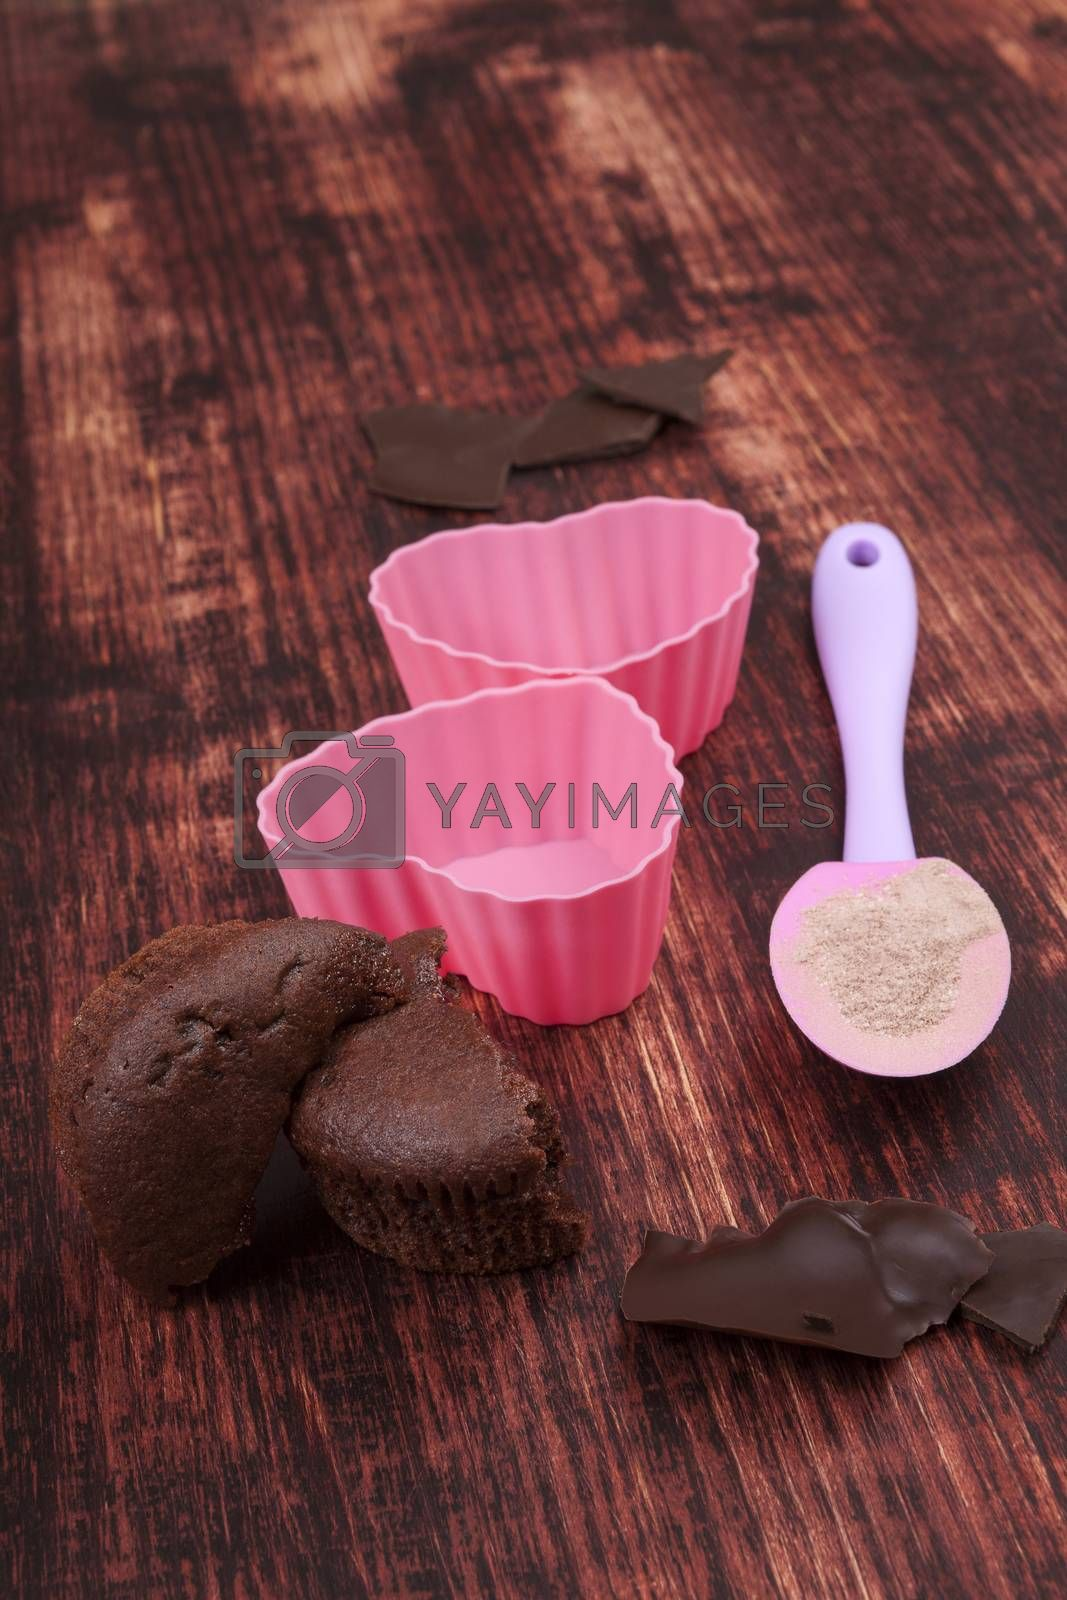 Chocolate muffin, chocolate bar, baking form and baking mixtures on brown wooden background.